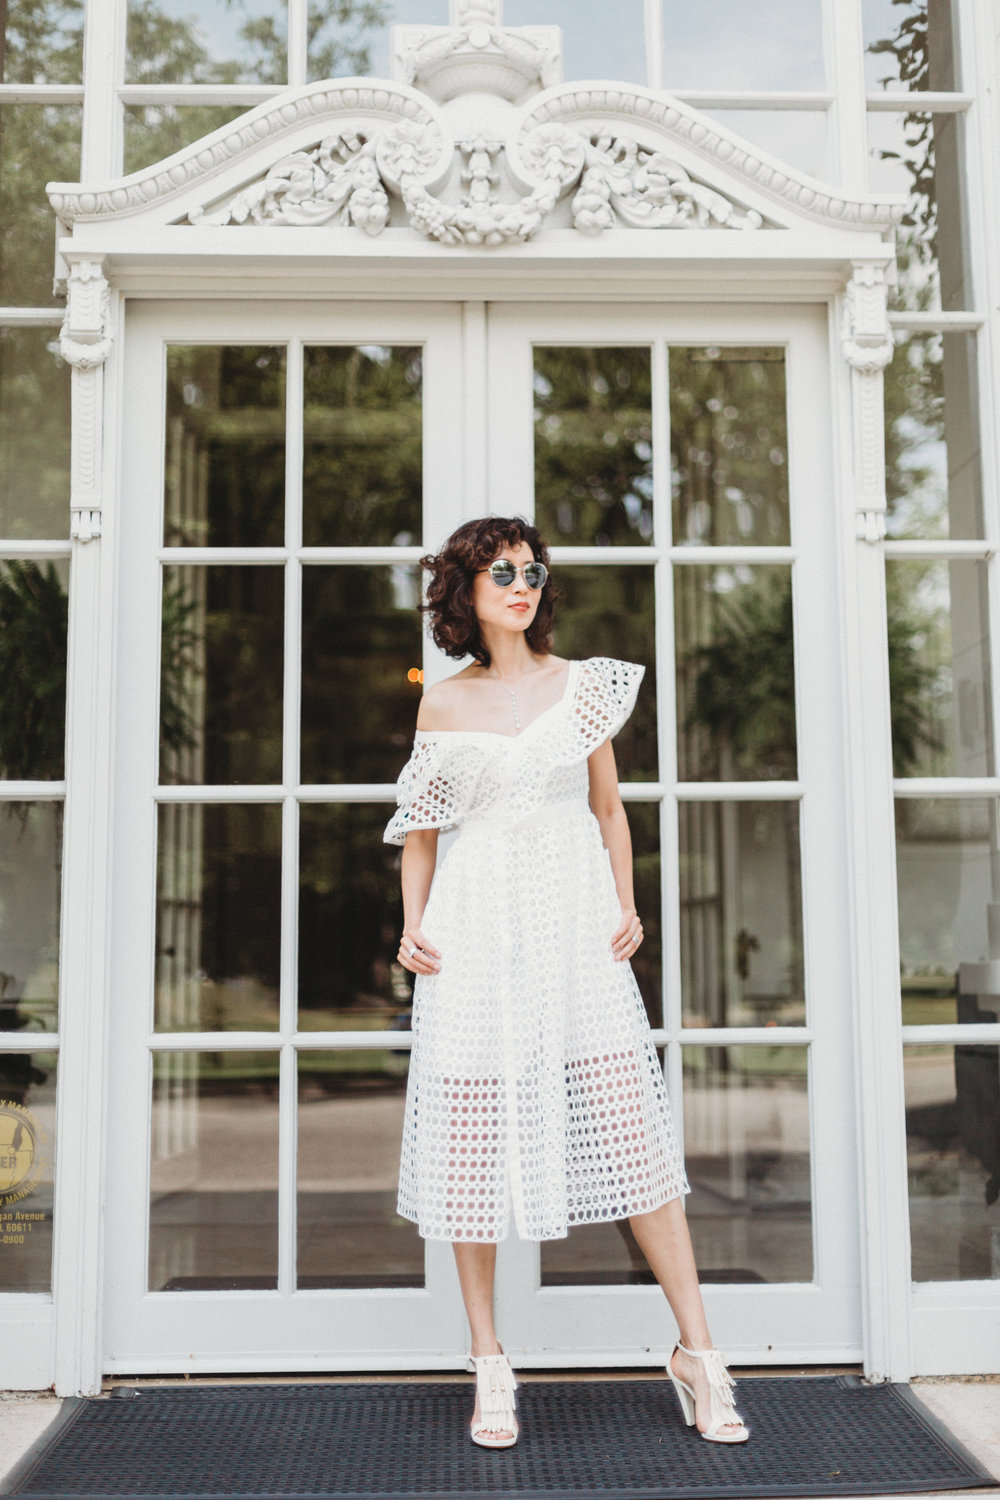 Shop my look and similar items here://   Self-Portrait lace frilled midi dress // Self-Portrait lace frilled midi dress // Gucci fringe sandals(similar steal version) // Tory burch flip flop (beige) //  Dior vintage sunglasses (similar steal version) //  Bulgari Necklace (similar steal version) //